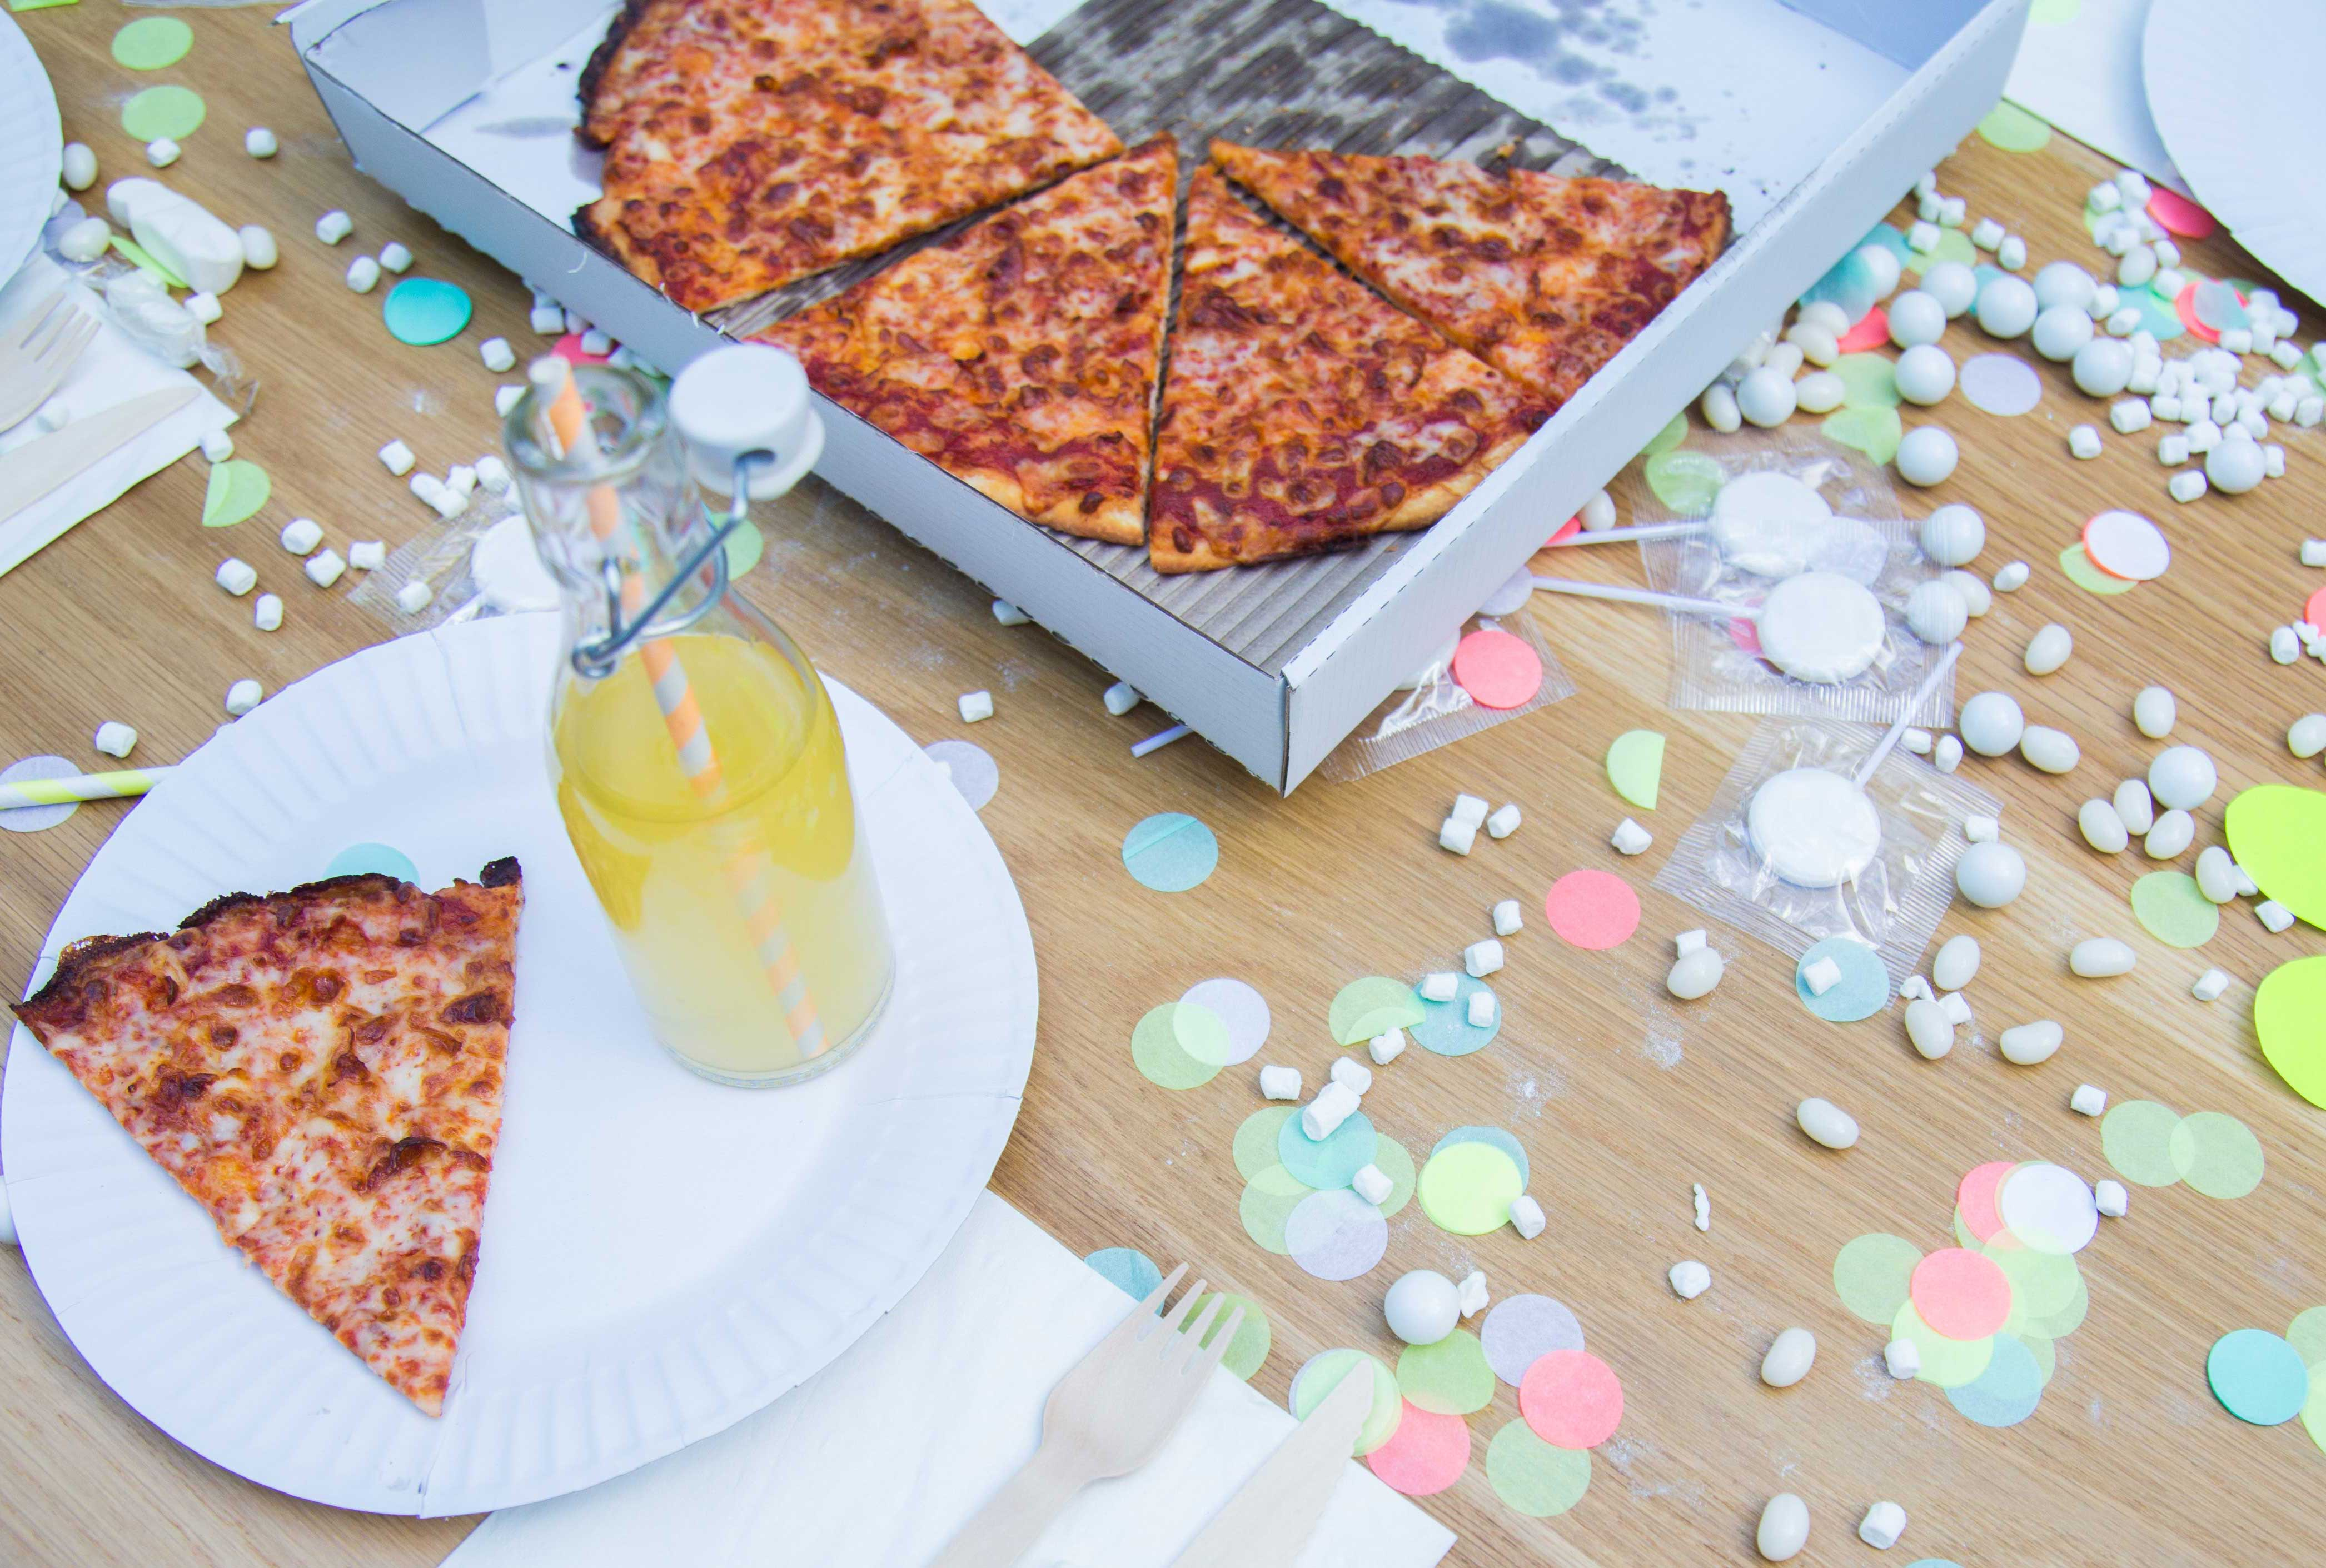 This is The Most Chic Pizza Party We've Ever Seen